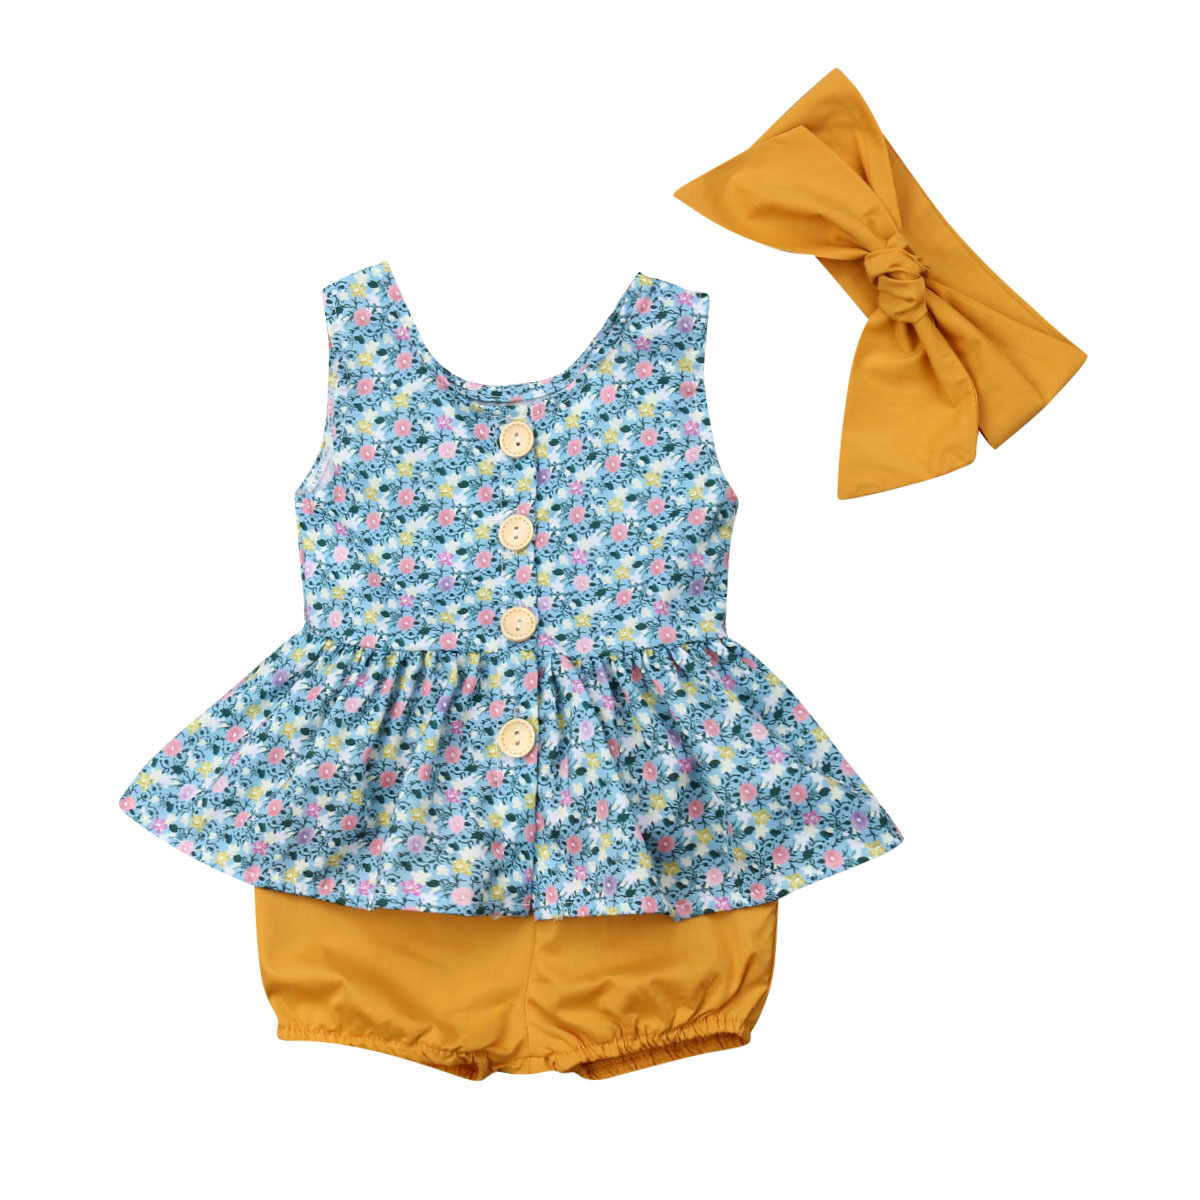 Adroit 2019 Newest Style Newborn Toddler Baby Kid Girl Top+headband+shorts Spring Summer 3pcs Adorable Outfit Clothes Set 0-24months